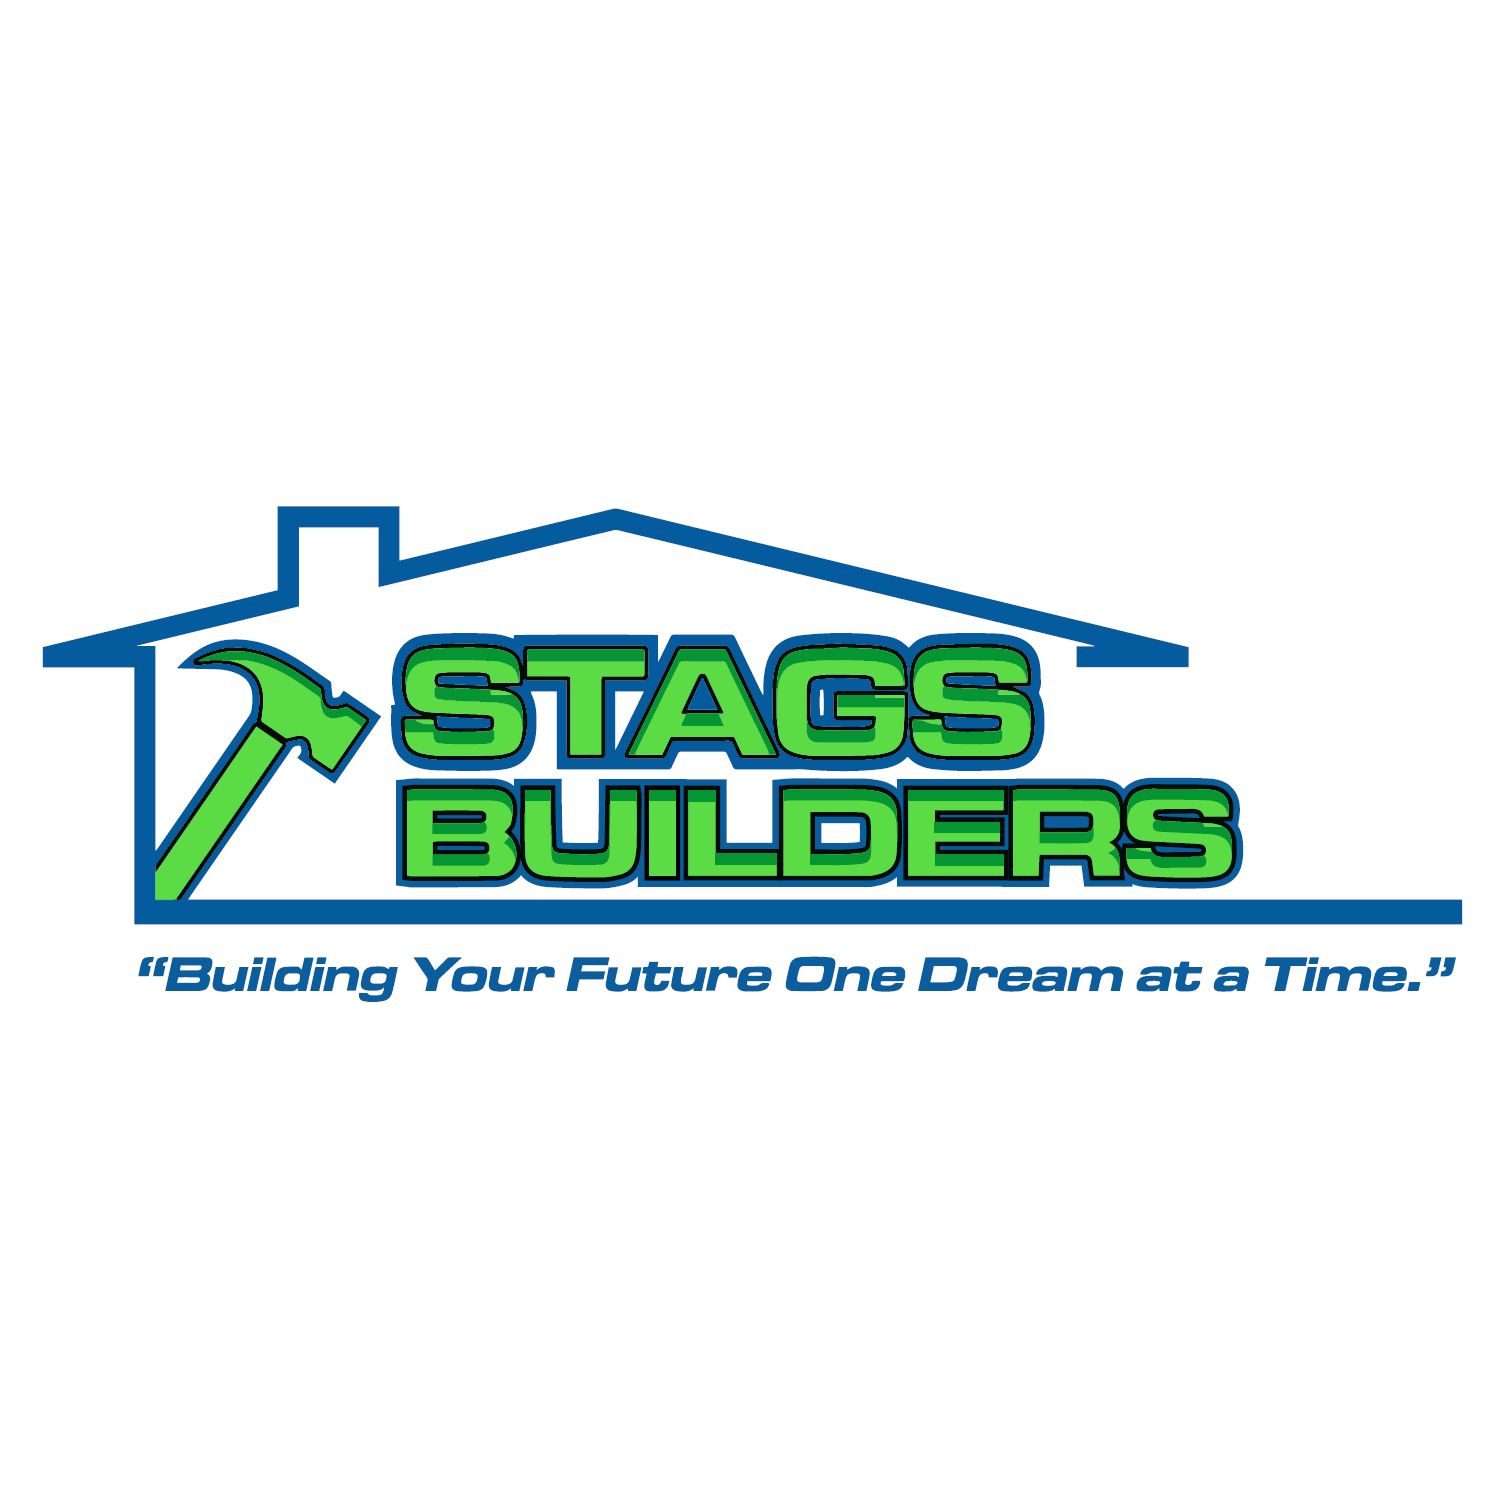 Stags builders llc coupons near me in 8coupons for Local builders near me